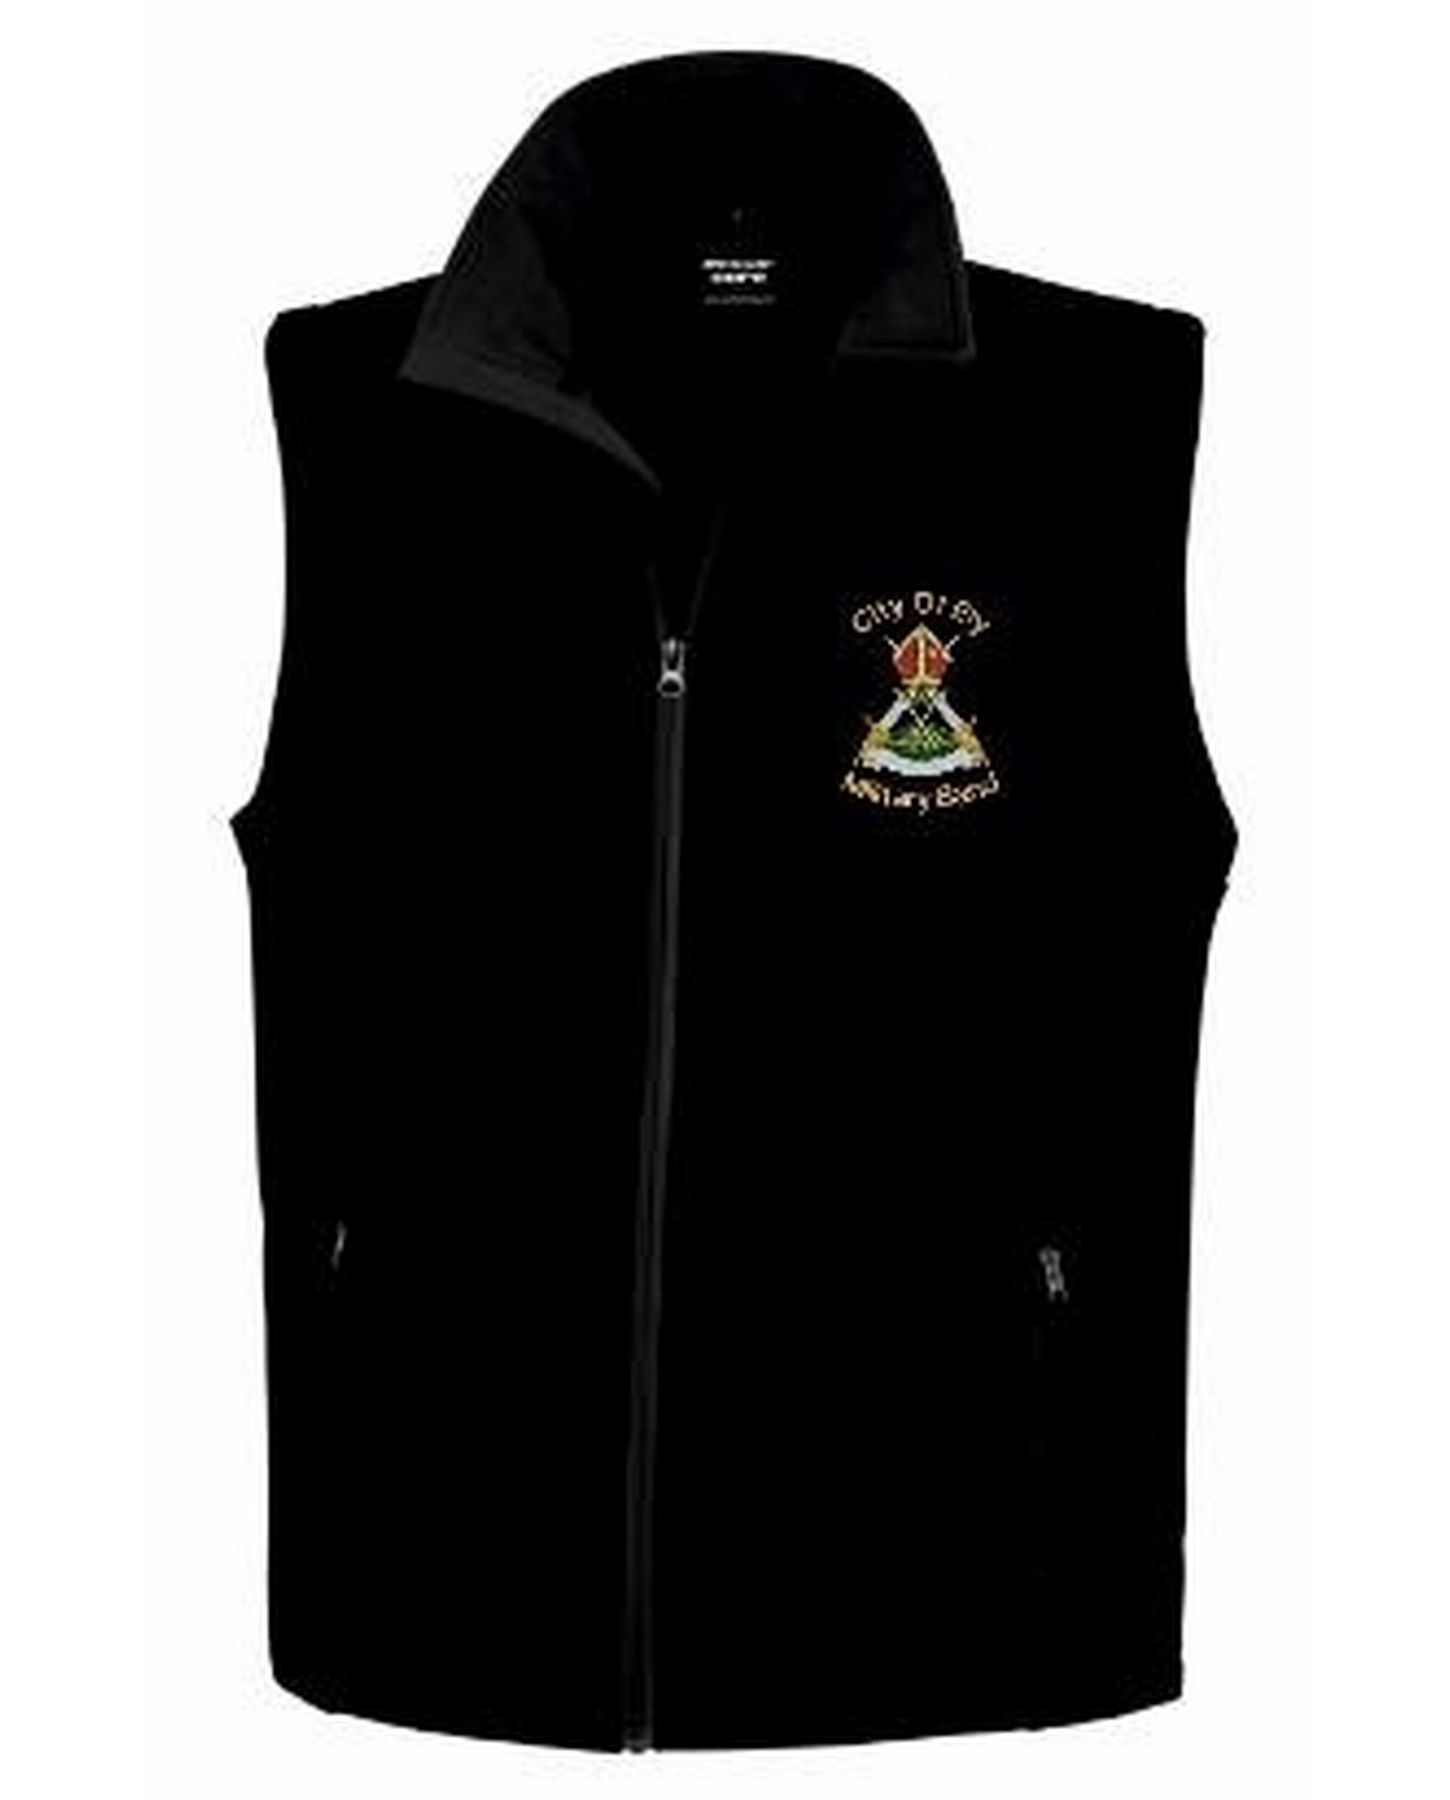 Ely Military Band – Softshell Gilet